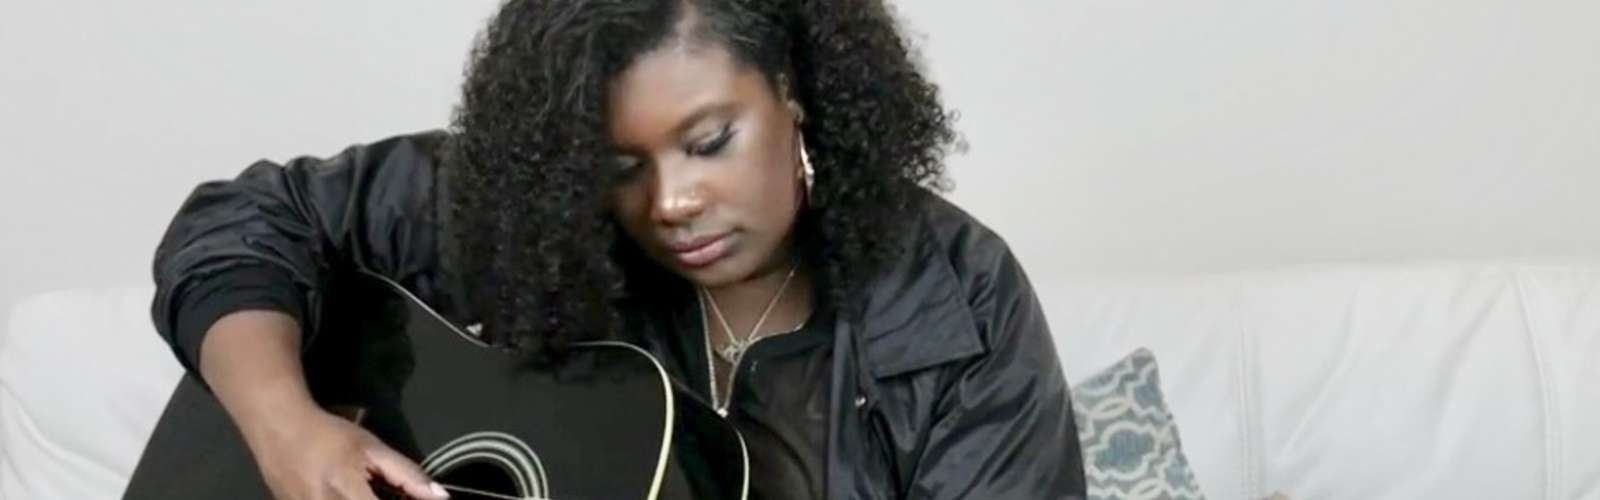 Voice, Songwriting, Guitar Lessons w/a Celeb Vocal Producer